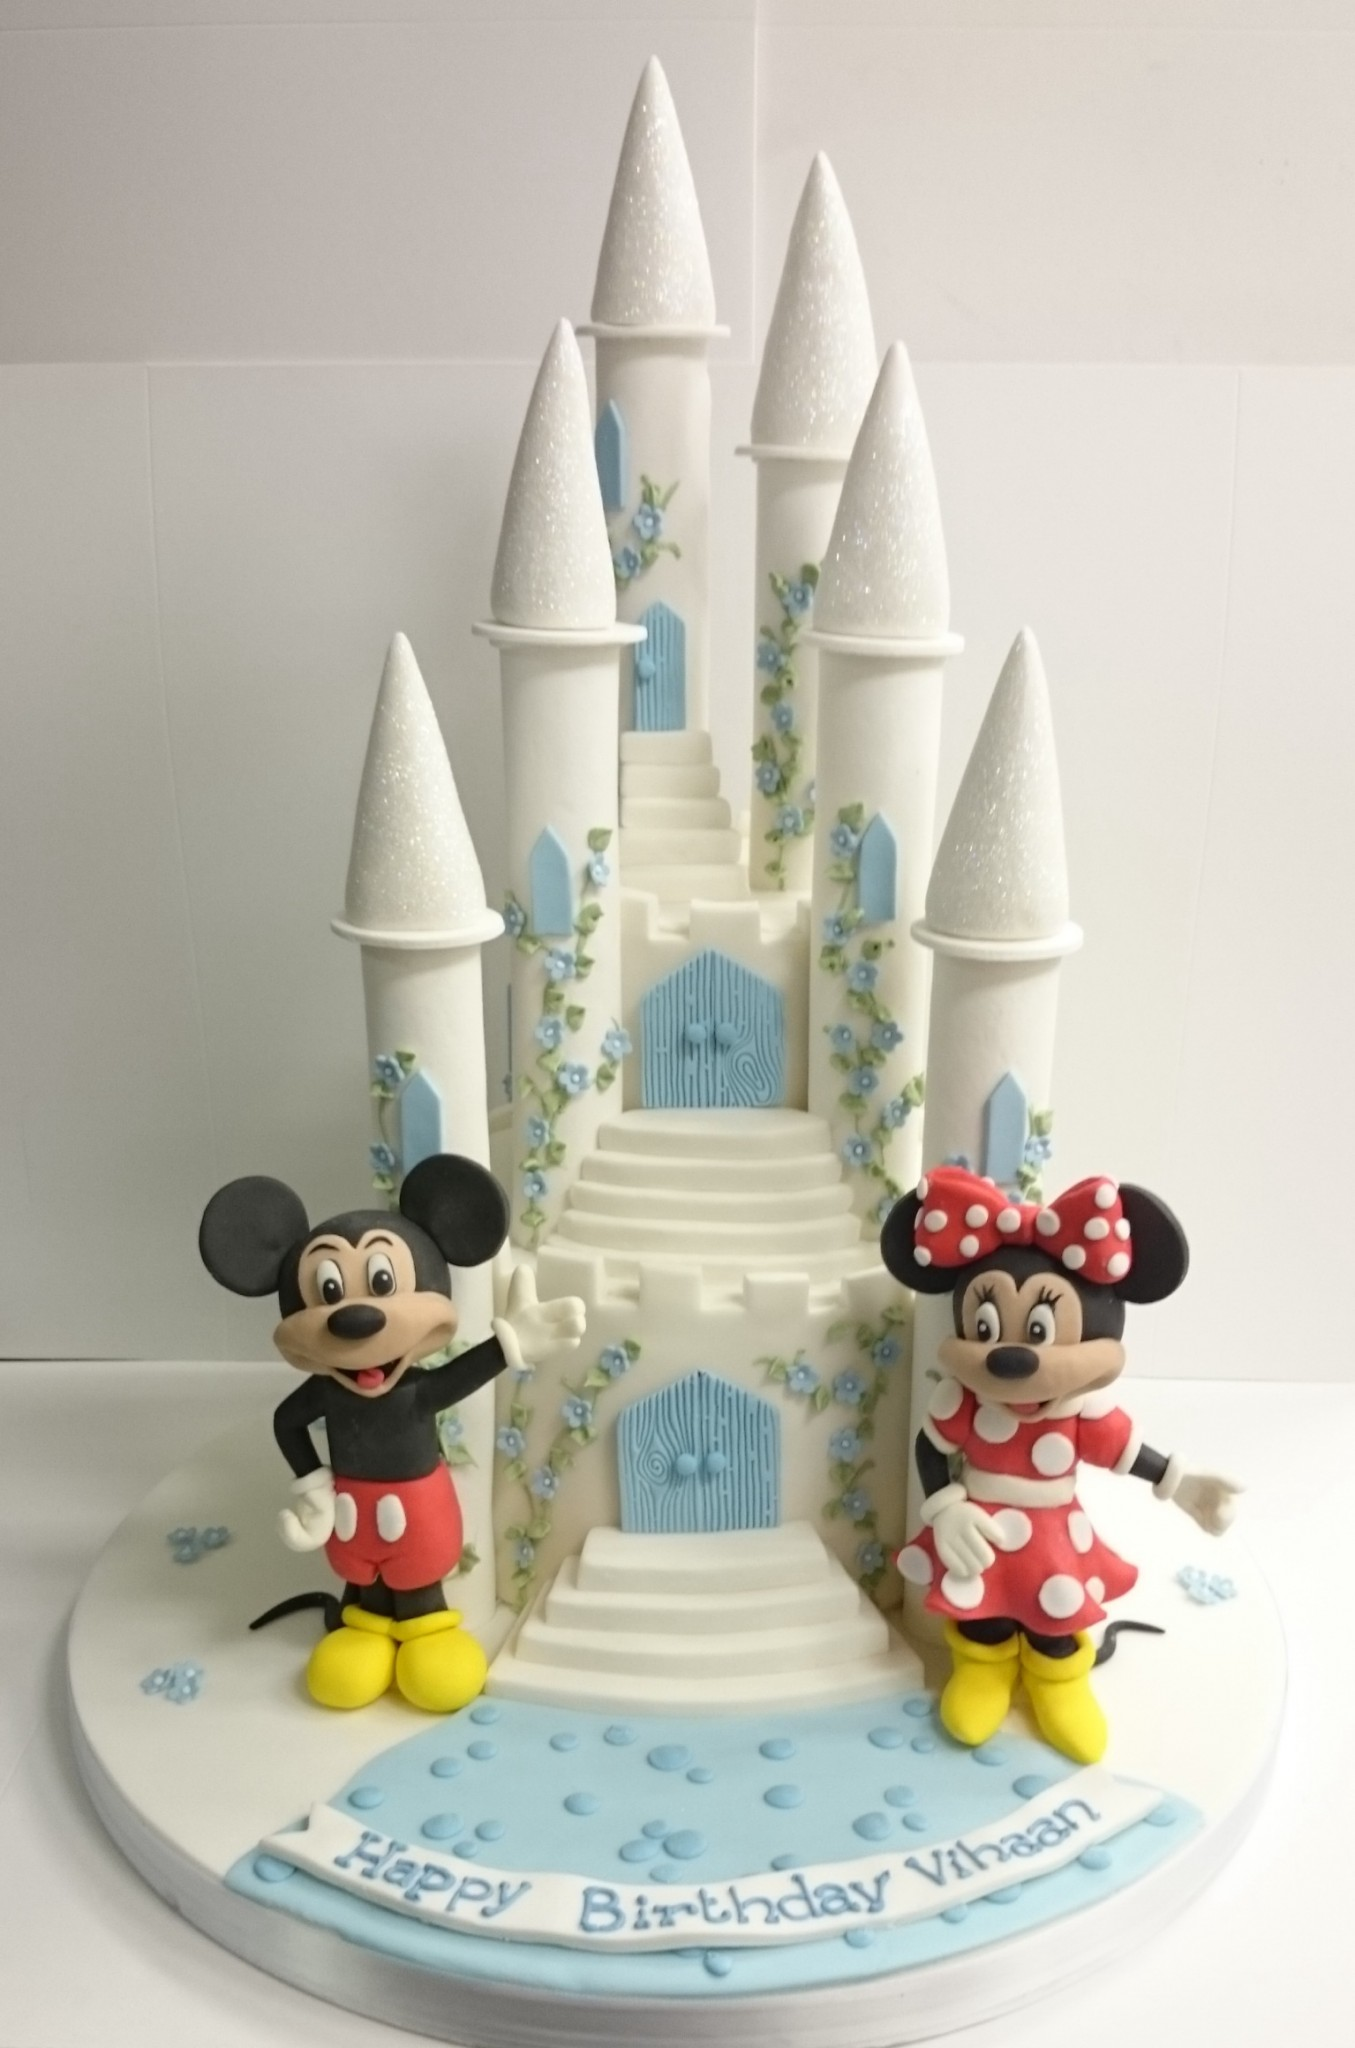 Disney Birthday Cakes Cakes By Robin